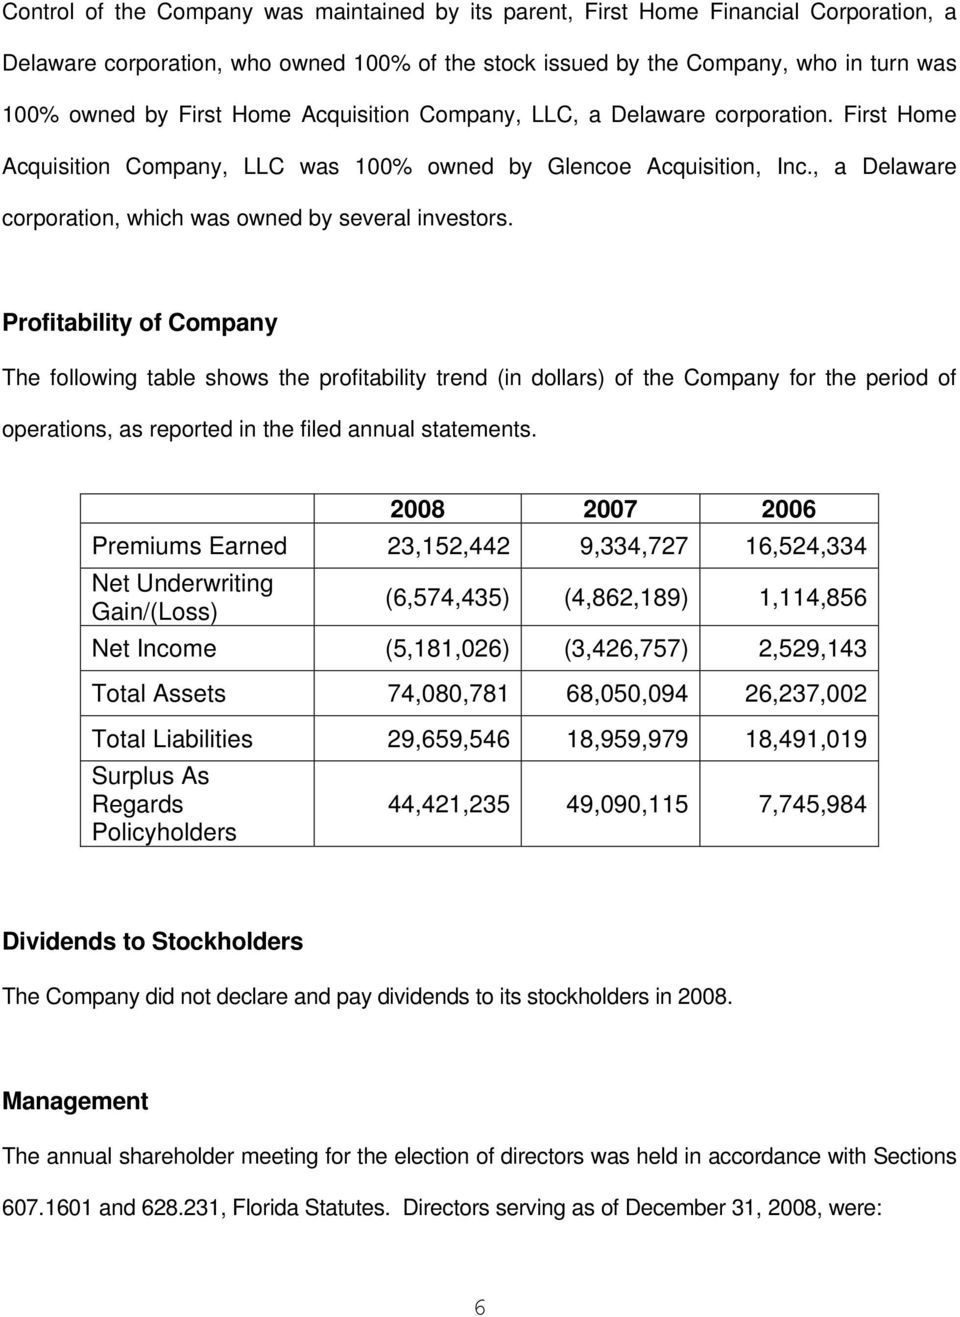 Profitability of Company The following table shows the profitability trend (in dollars) of the Company for the period of operations, as reported in the filed annual statements.